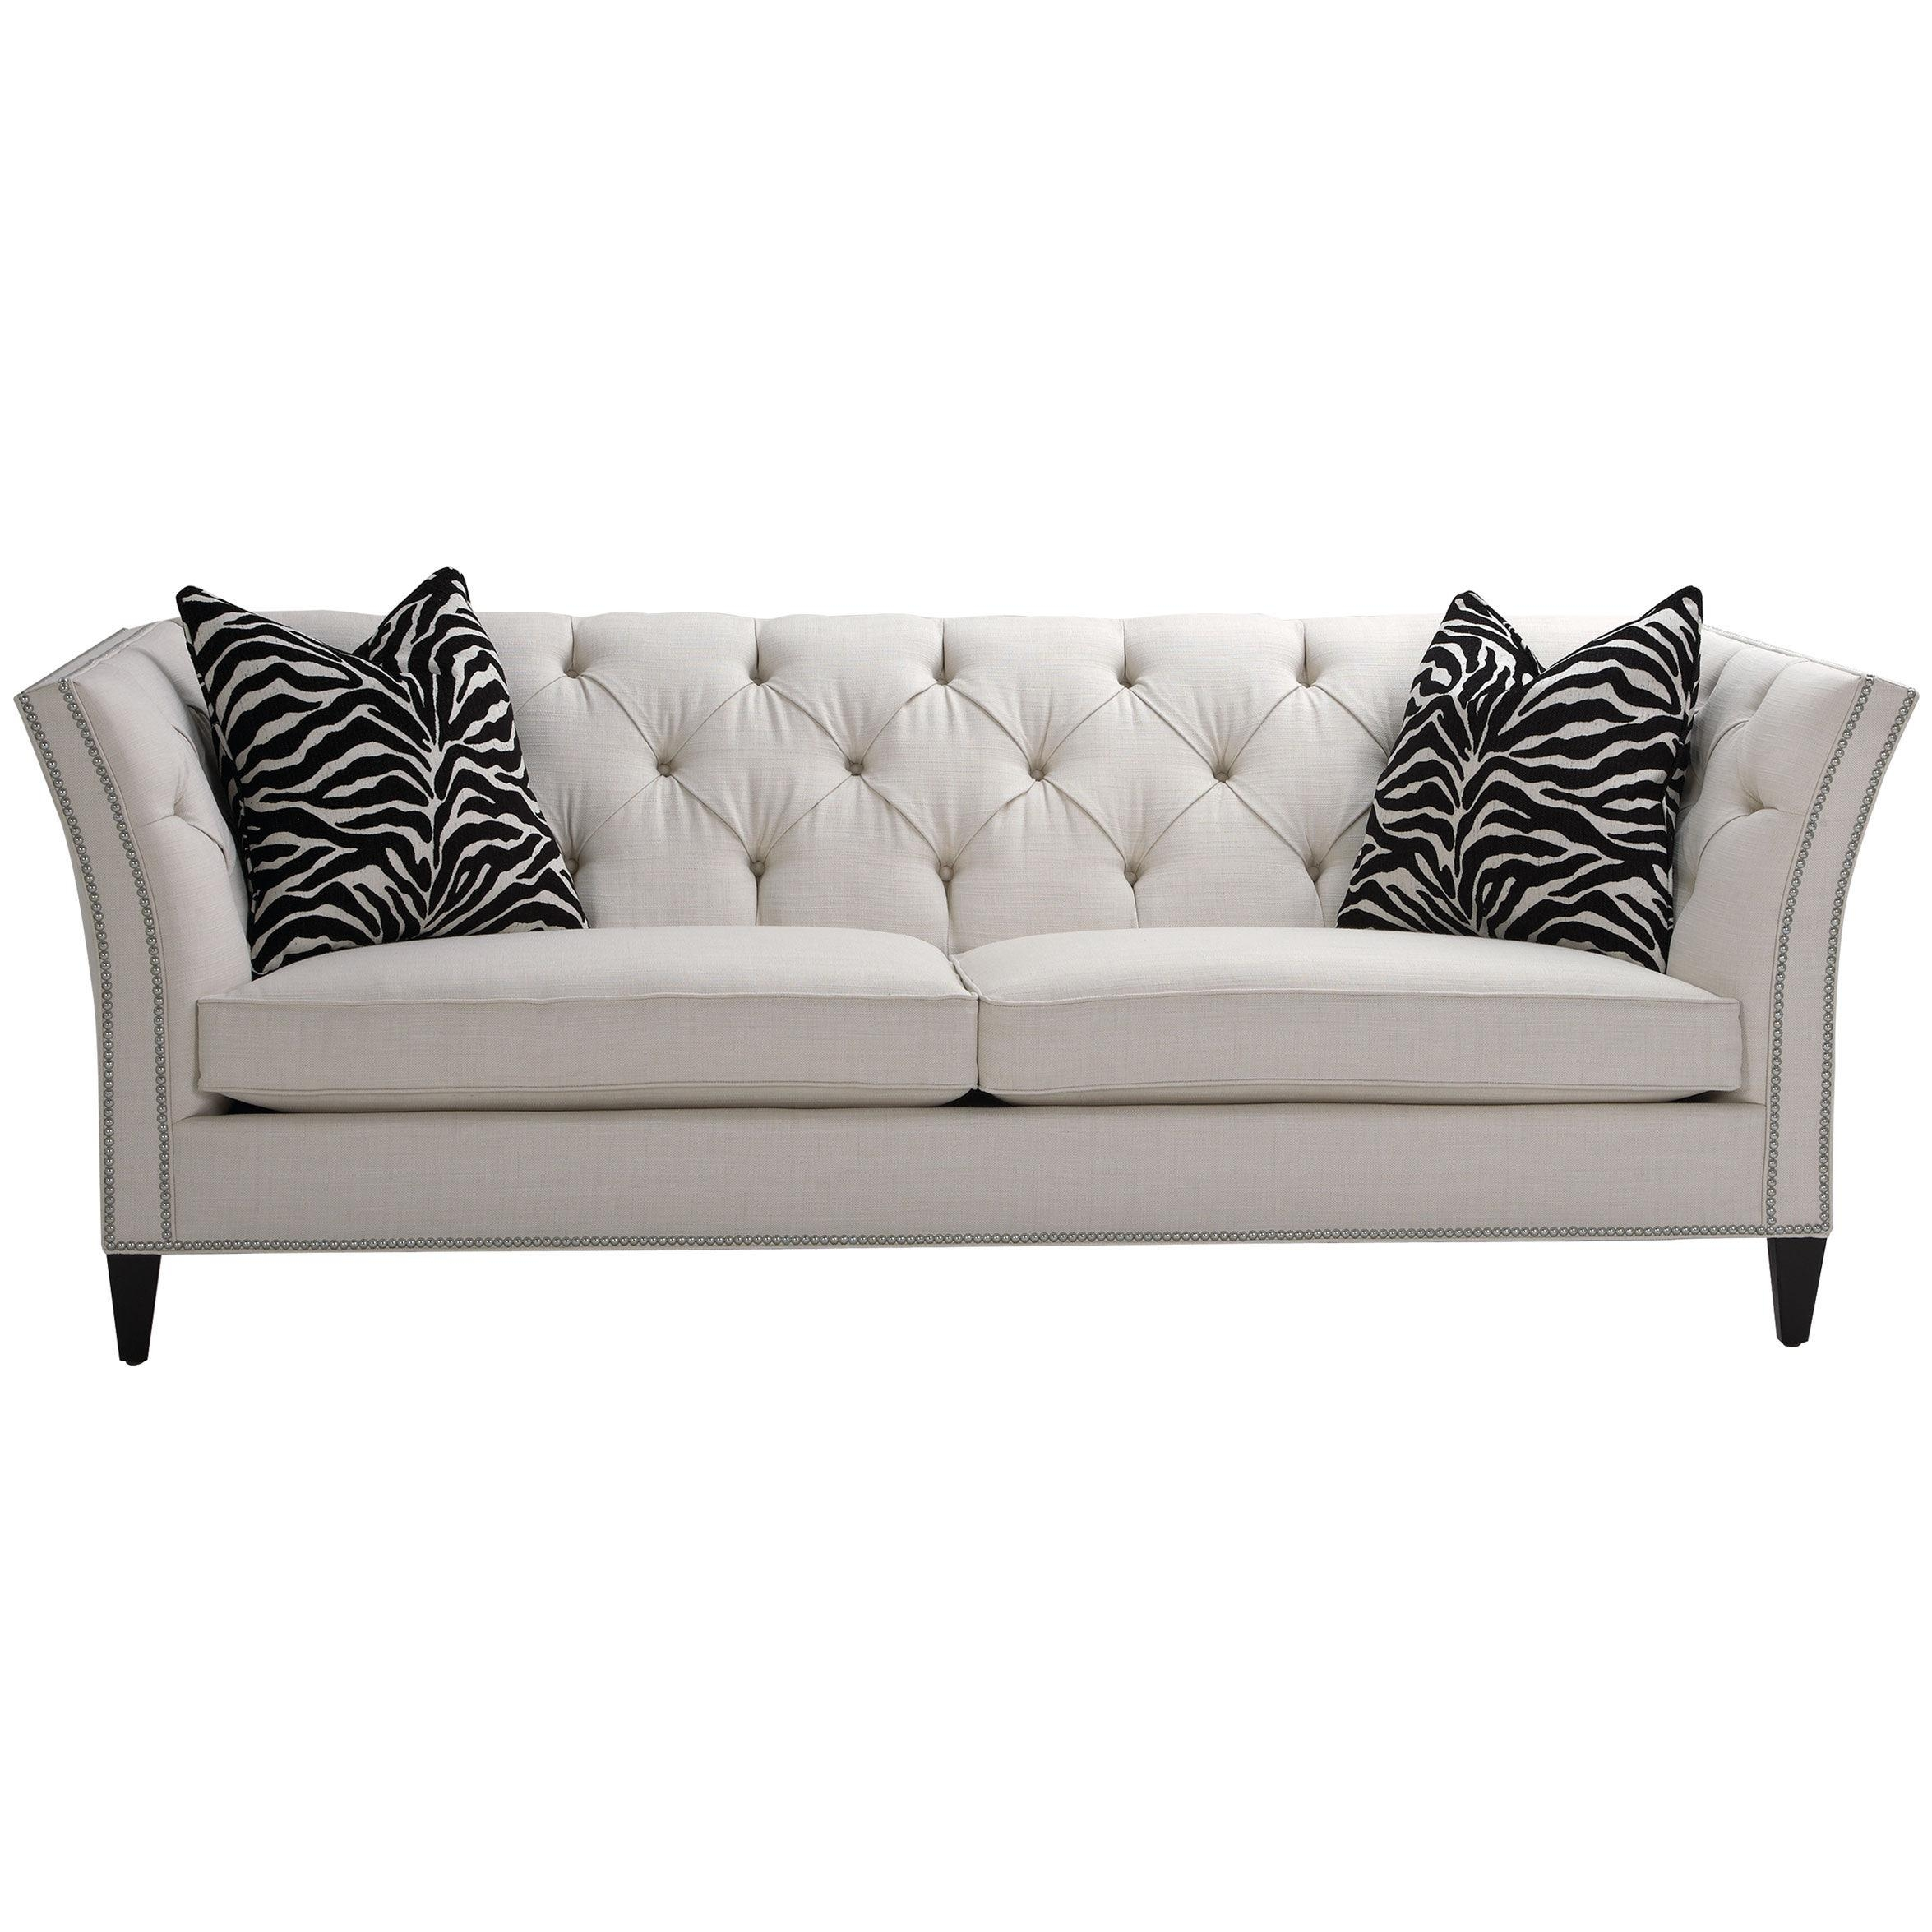 Top 370 Complaints And Reviews About Ethan Allen | Page 3 Cleaning Pertaining To Allen White Sofas (View 12 of 20)